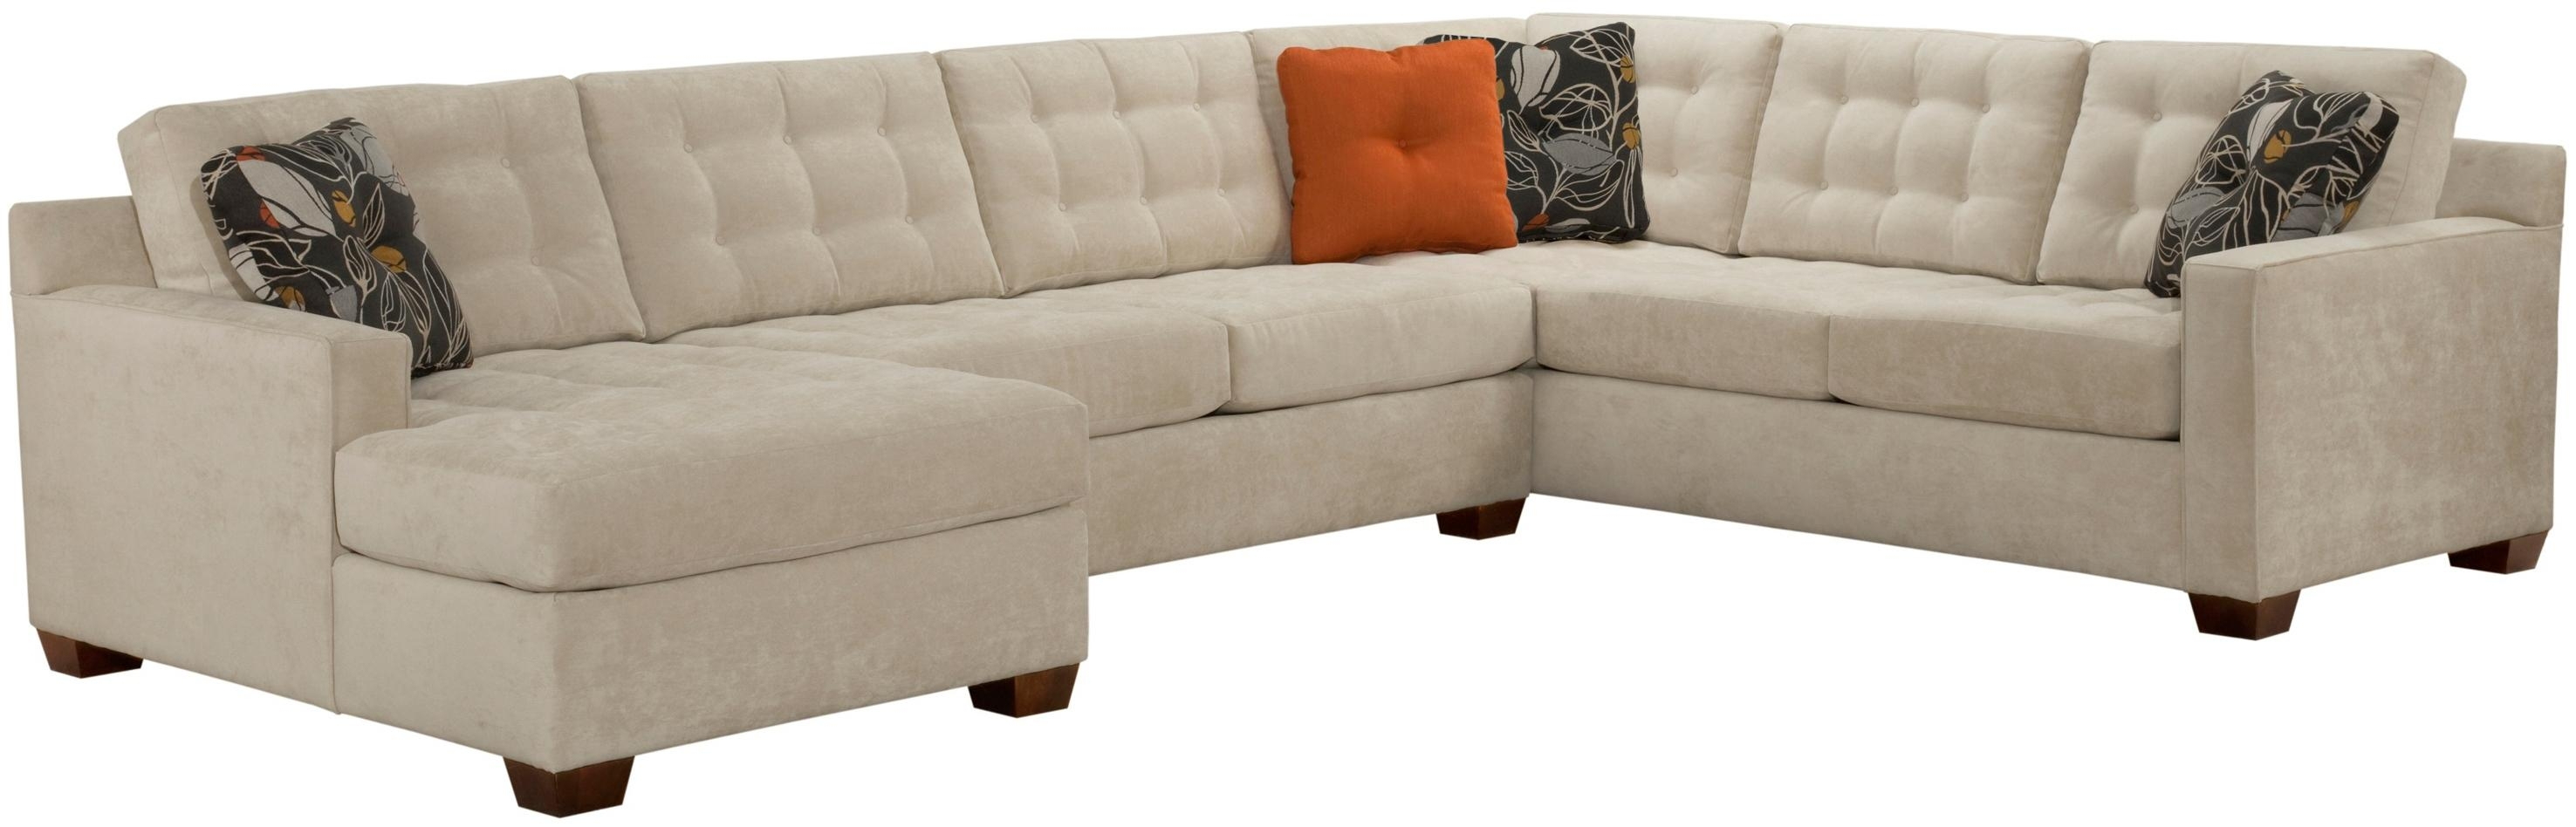 Broyhill Furniture Tribeca Contemporary Sectional Sofa With Left For Broyhill Sectional Sofas (#6 of 12)